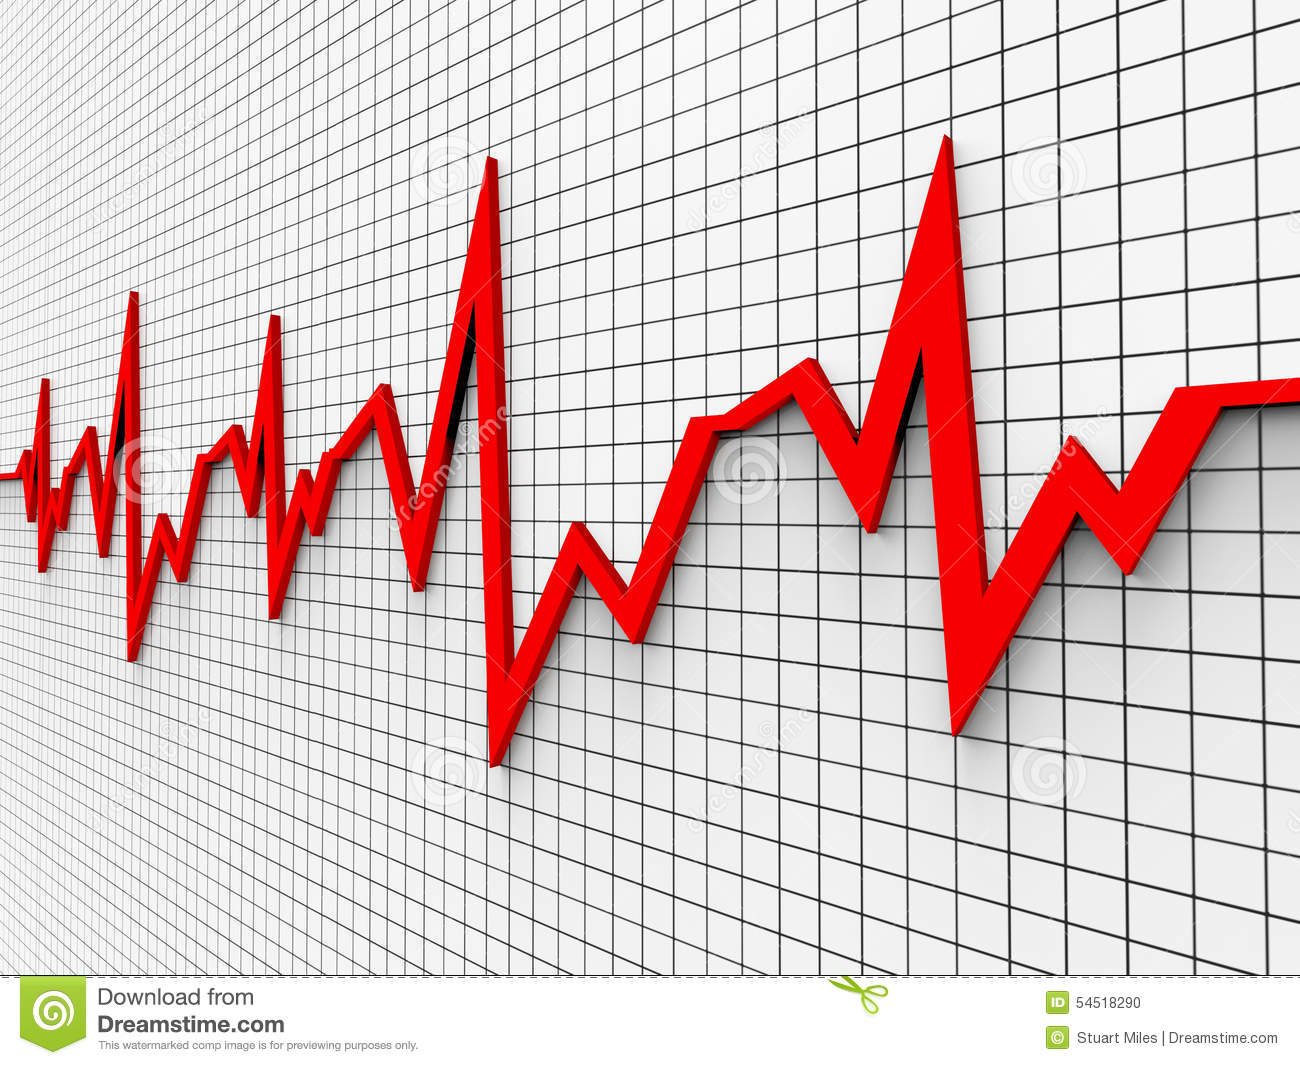 heart beat diagram blank skeletal heartbeat chart shows flat screen and cardiograph stock